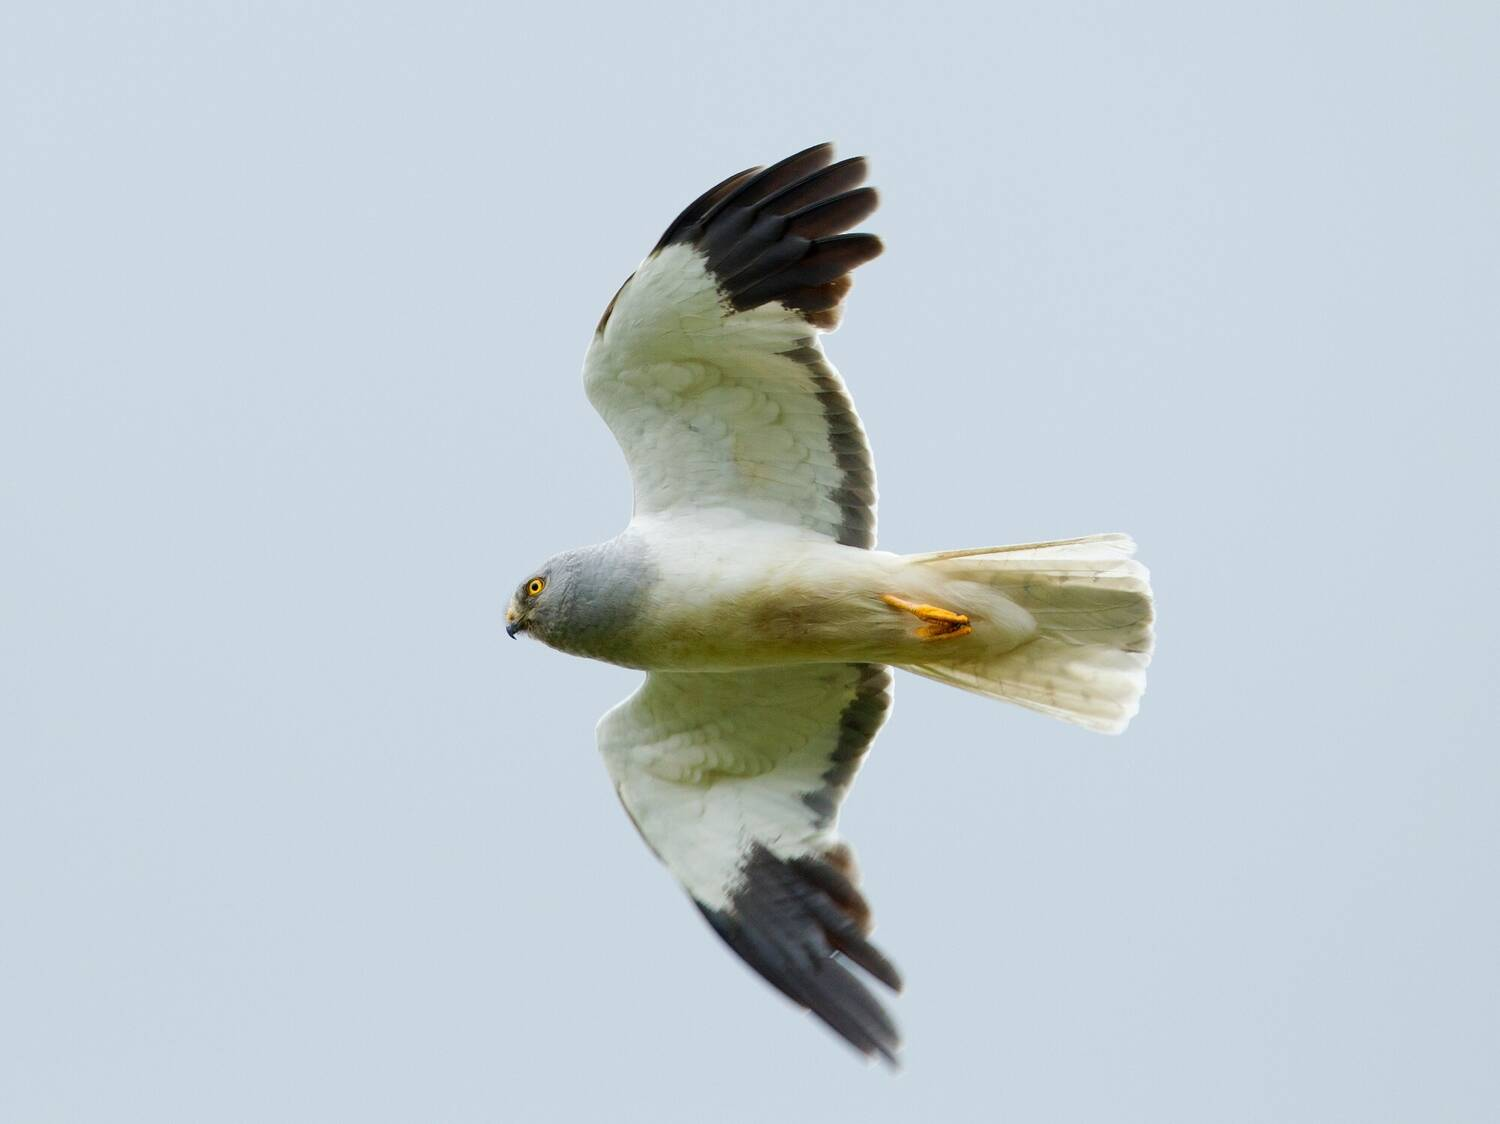 A hen harrier in flight. It has a predominantly white body, with black-tipped wings.